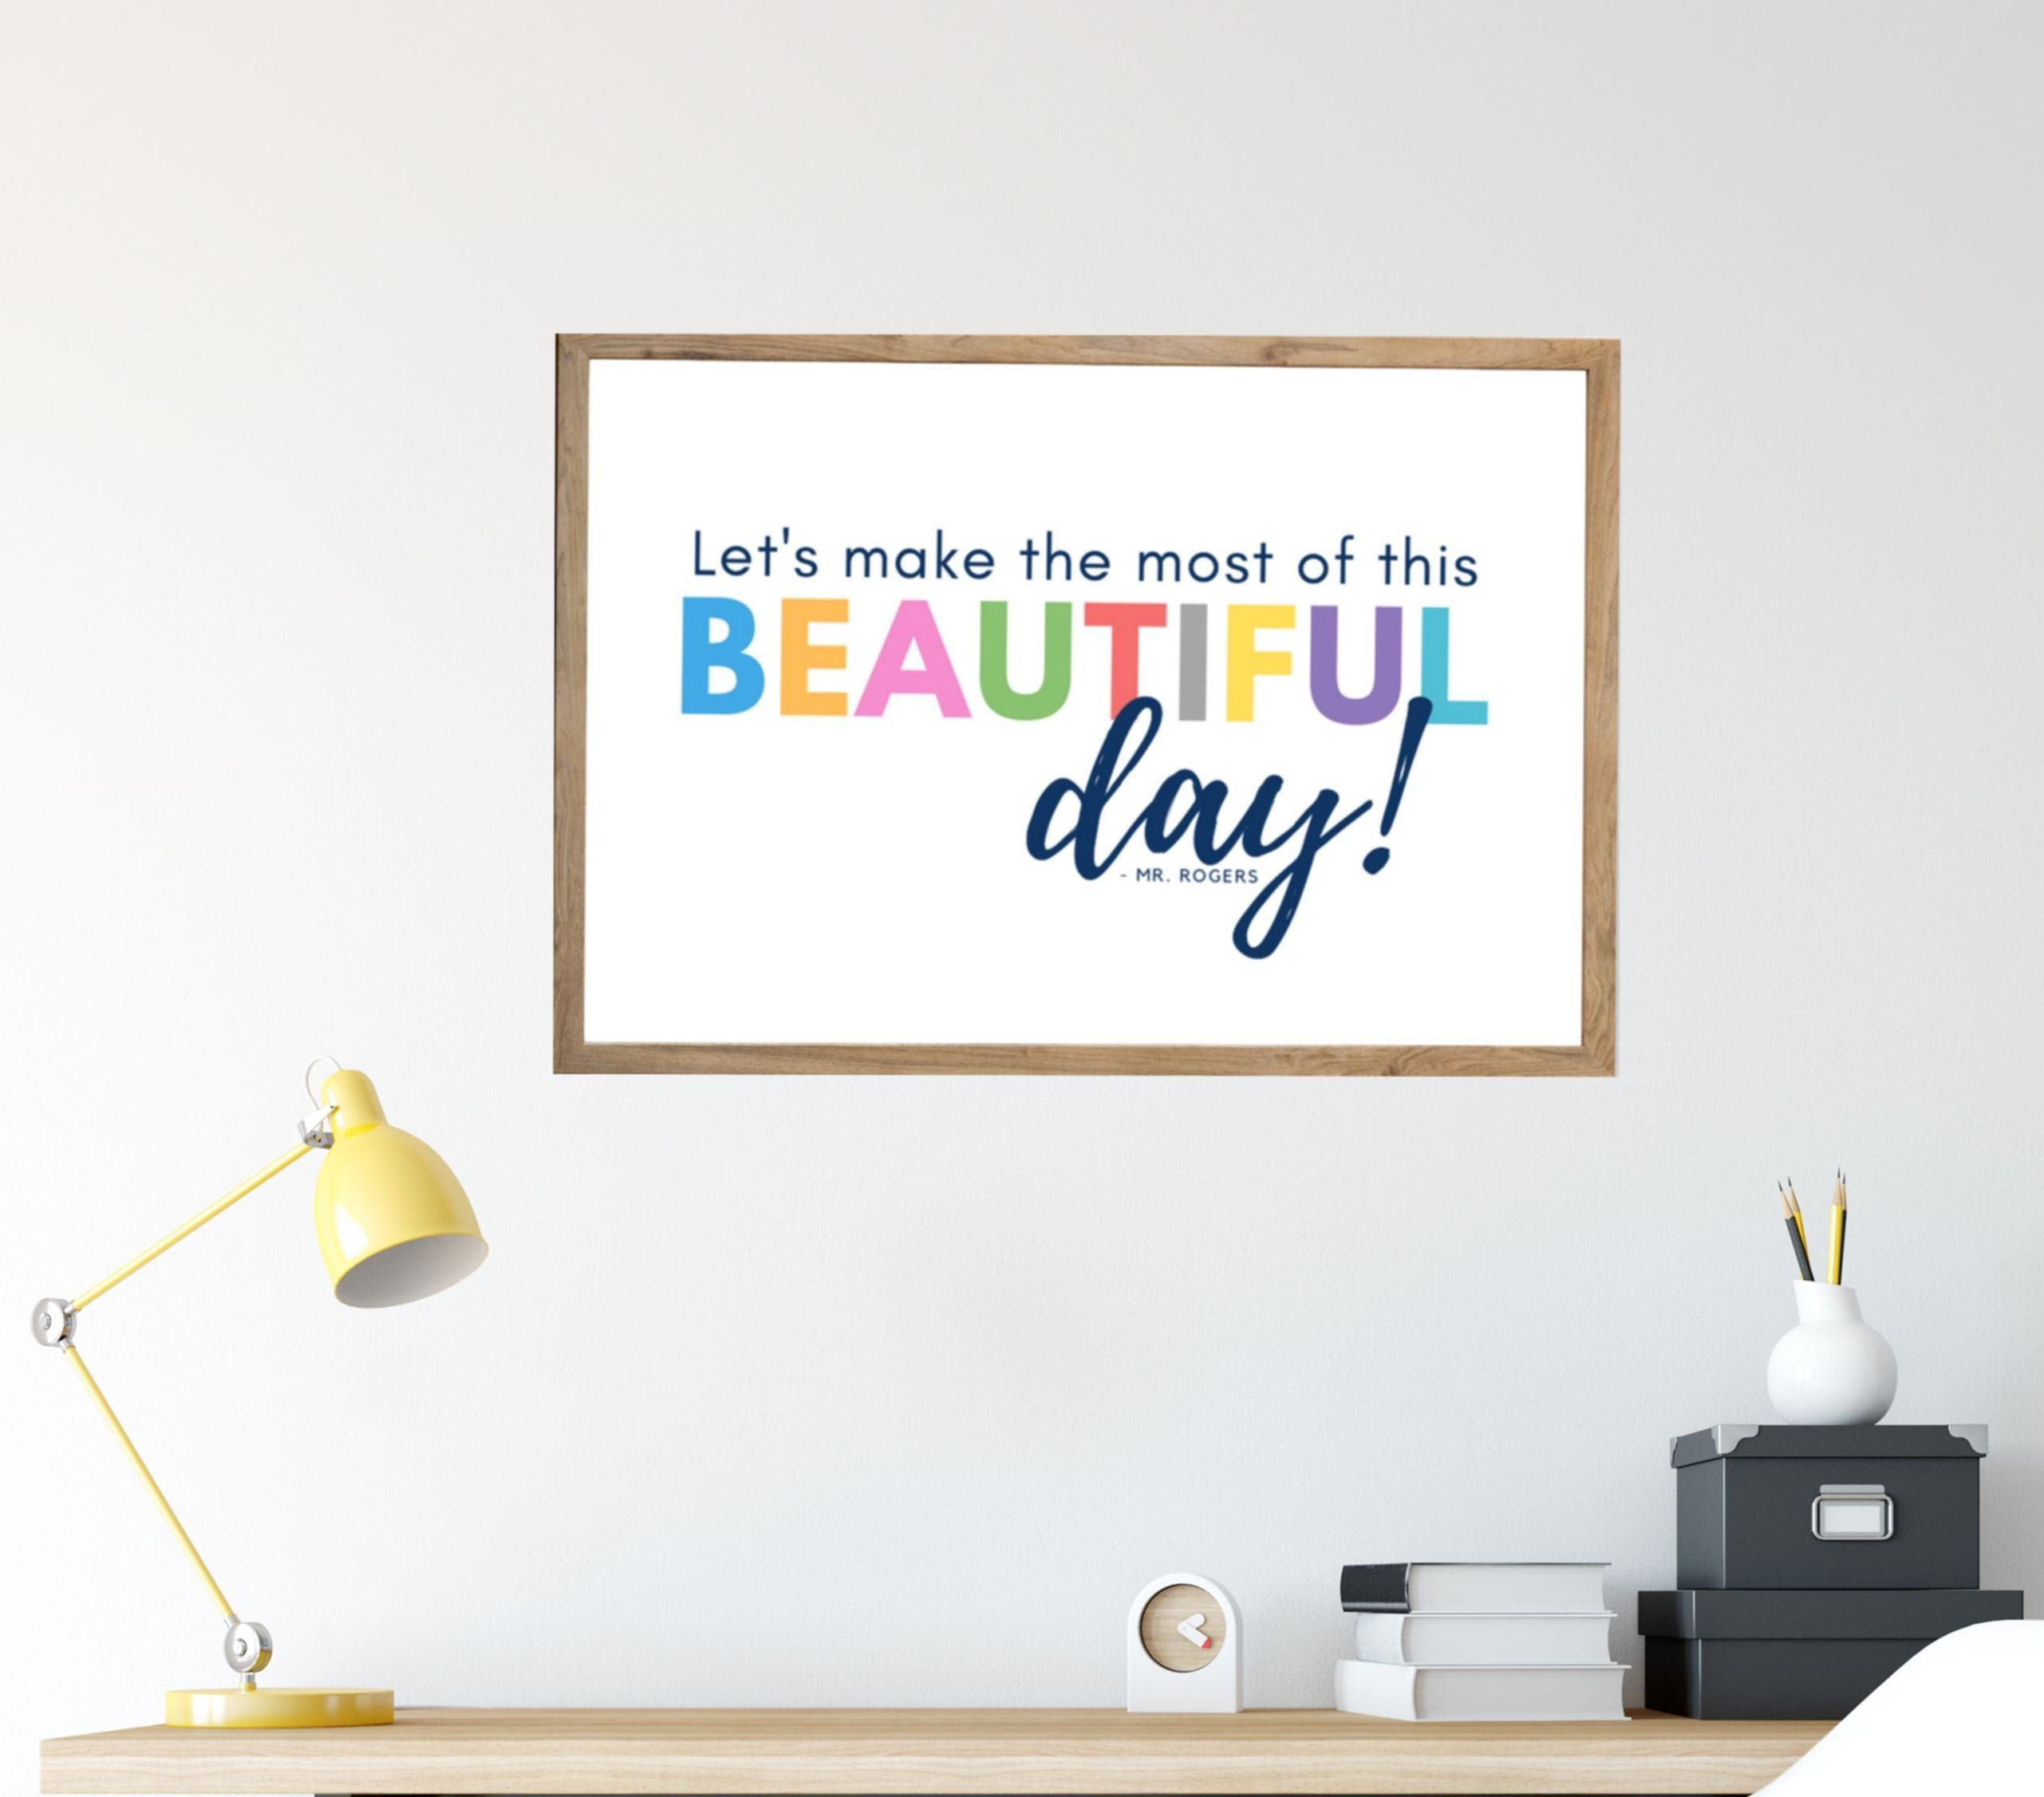 Mr Rogers Quotes Printable Beautiful Day Wall Art Educational Etsy Education Poster Inspirational Prints Printable Quotes